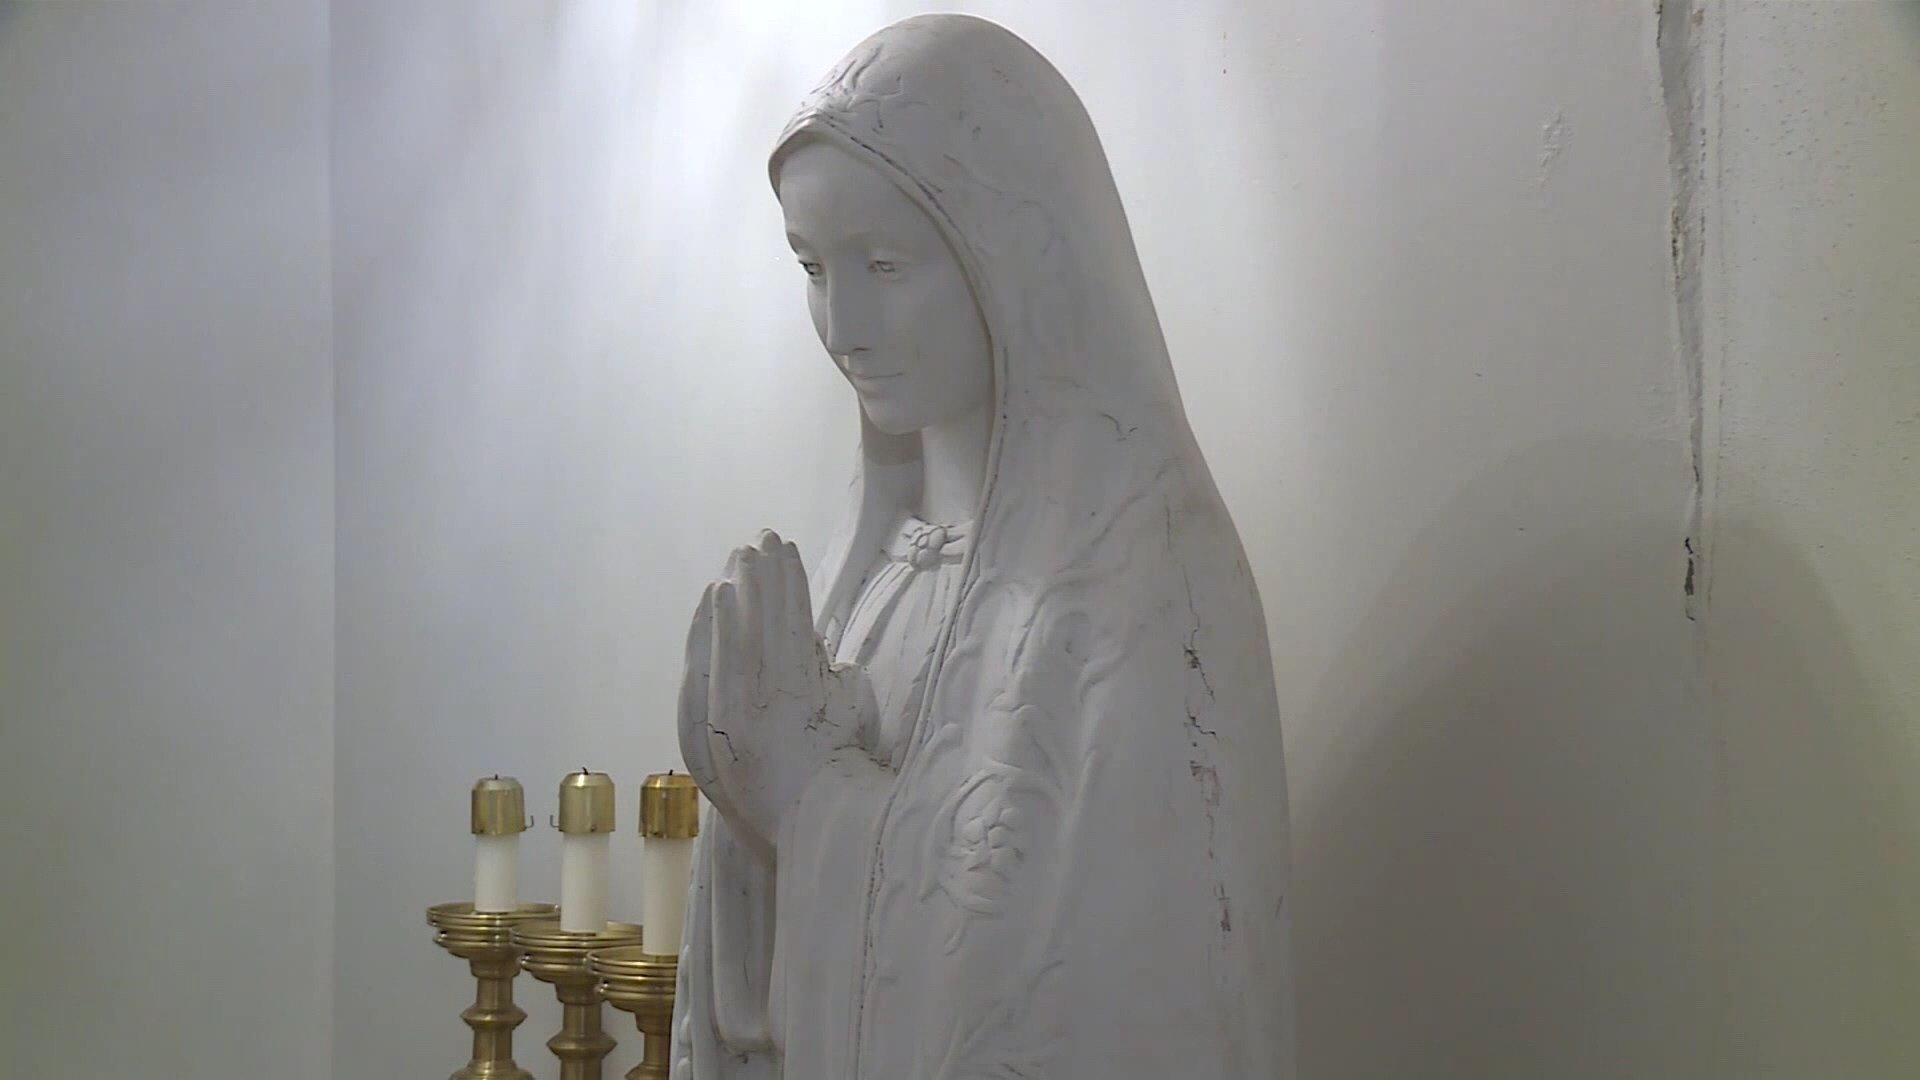 This 5 ft. statue of the Virgin Mary was stolen from St. Mary's Catholic Church last weekend.